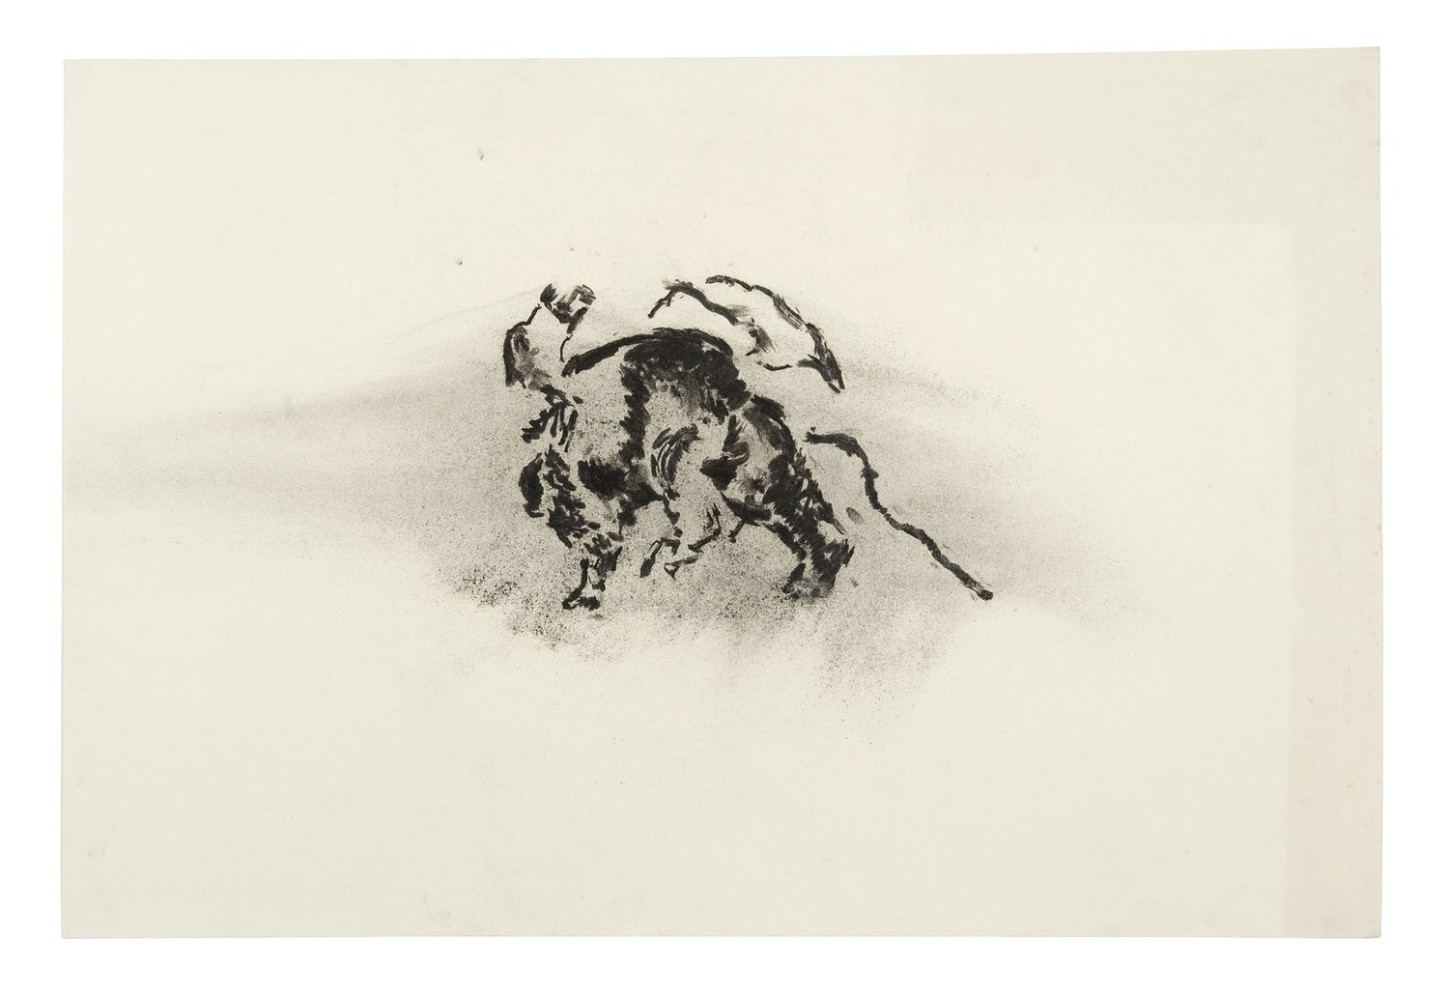 <div class=&#34;artist&#34;><strong>Nicholas POPE</strong></div> 1949- <div class=&#34;title&#34;><em>Untitled drawing</em>, 1980</div> <div class=&#34;medium&#34;>Charcoal on paper</div> <div class=&#34;dimensions&#34;>51 x 76 cm</div>